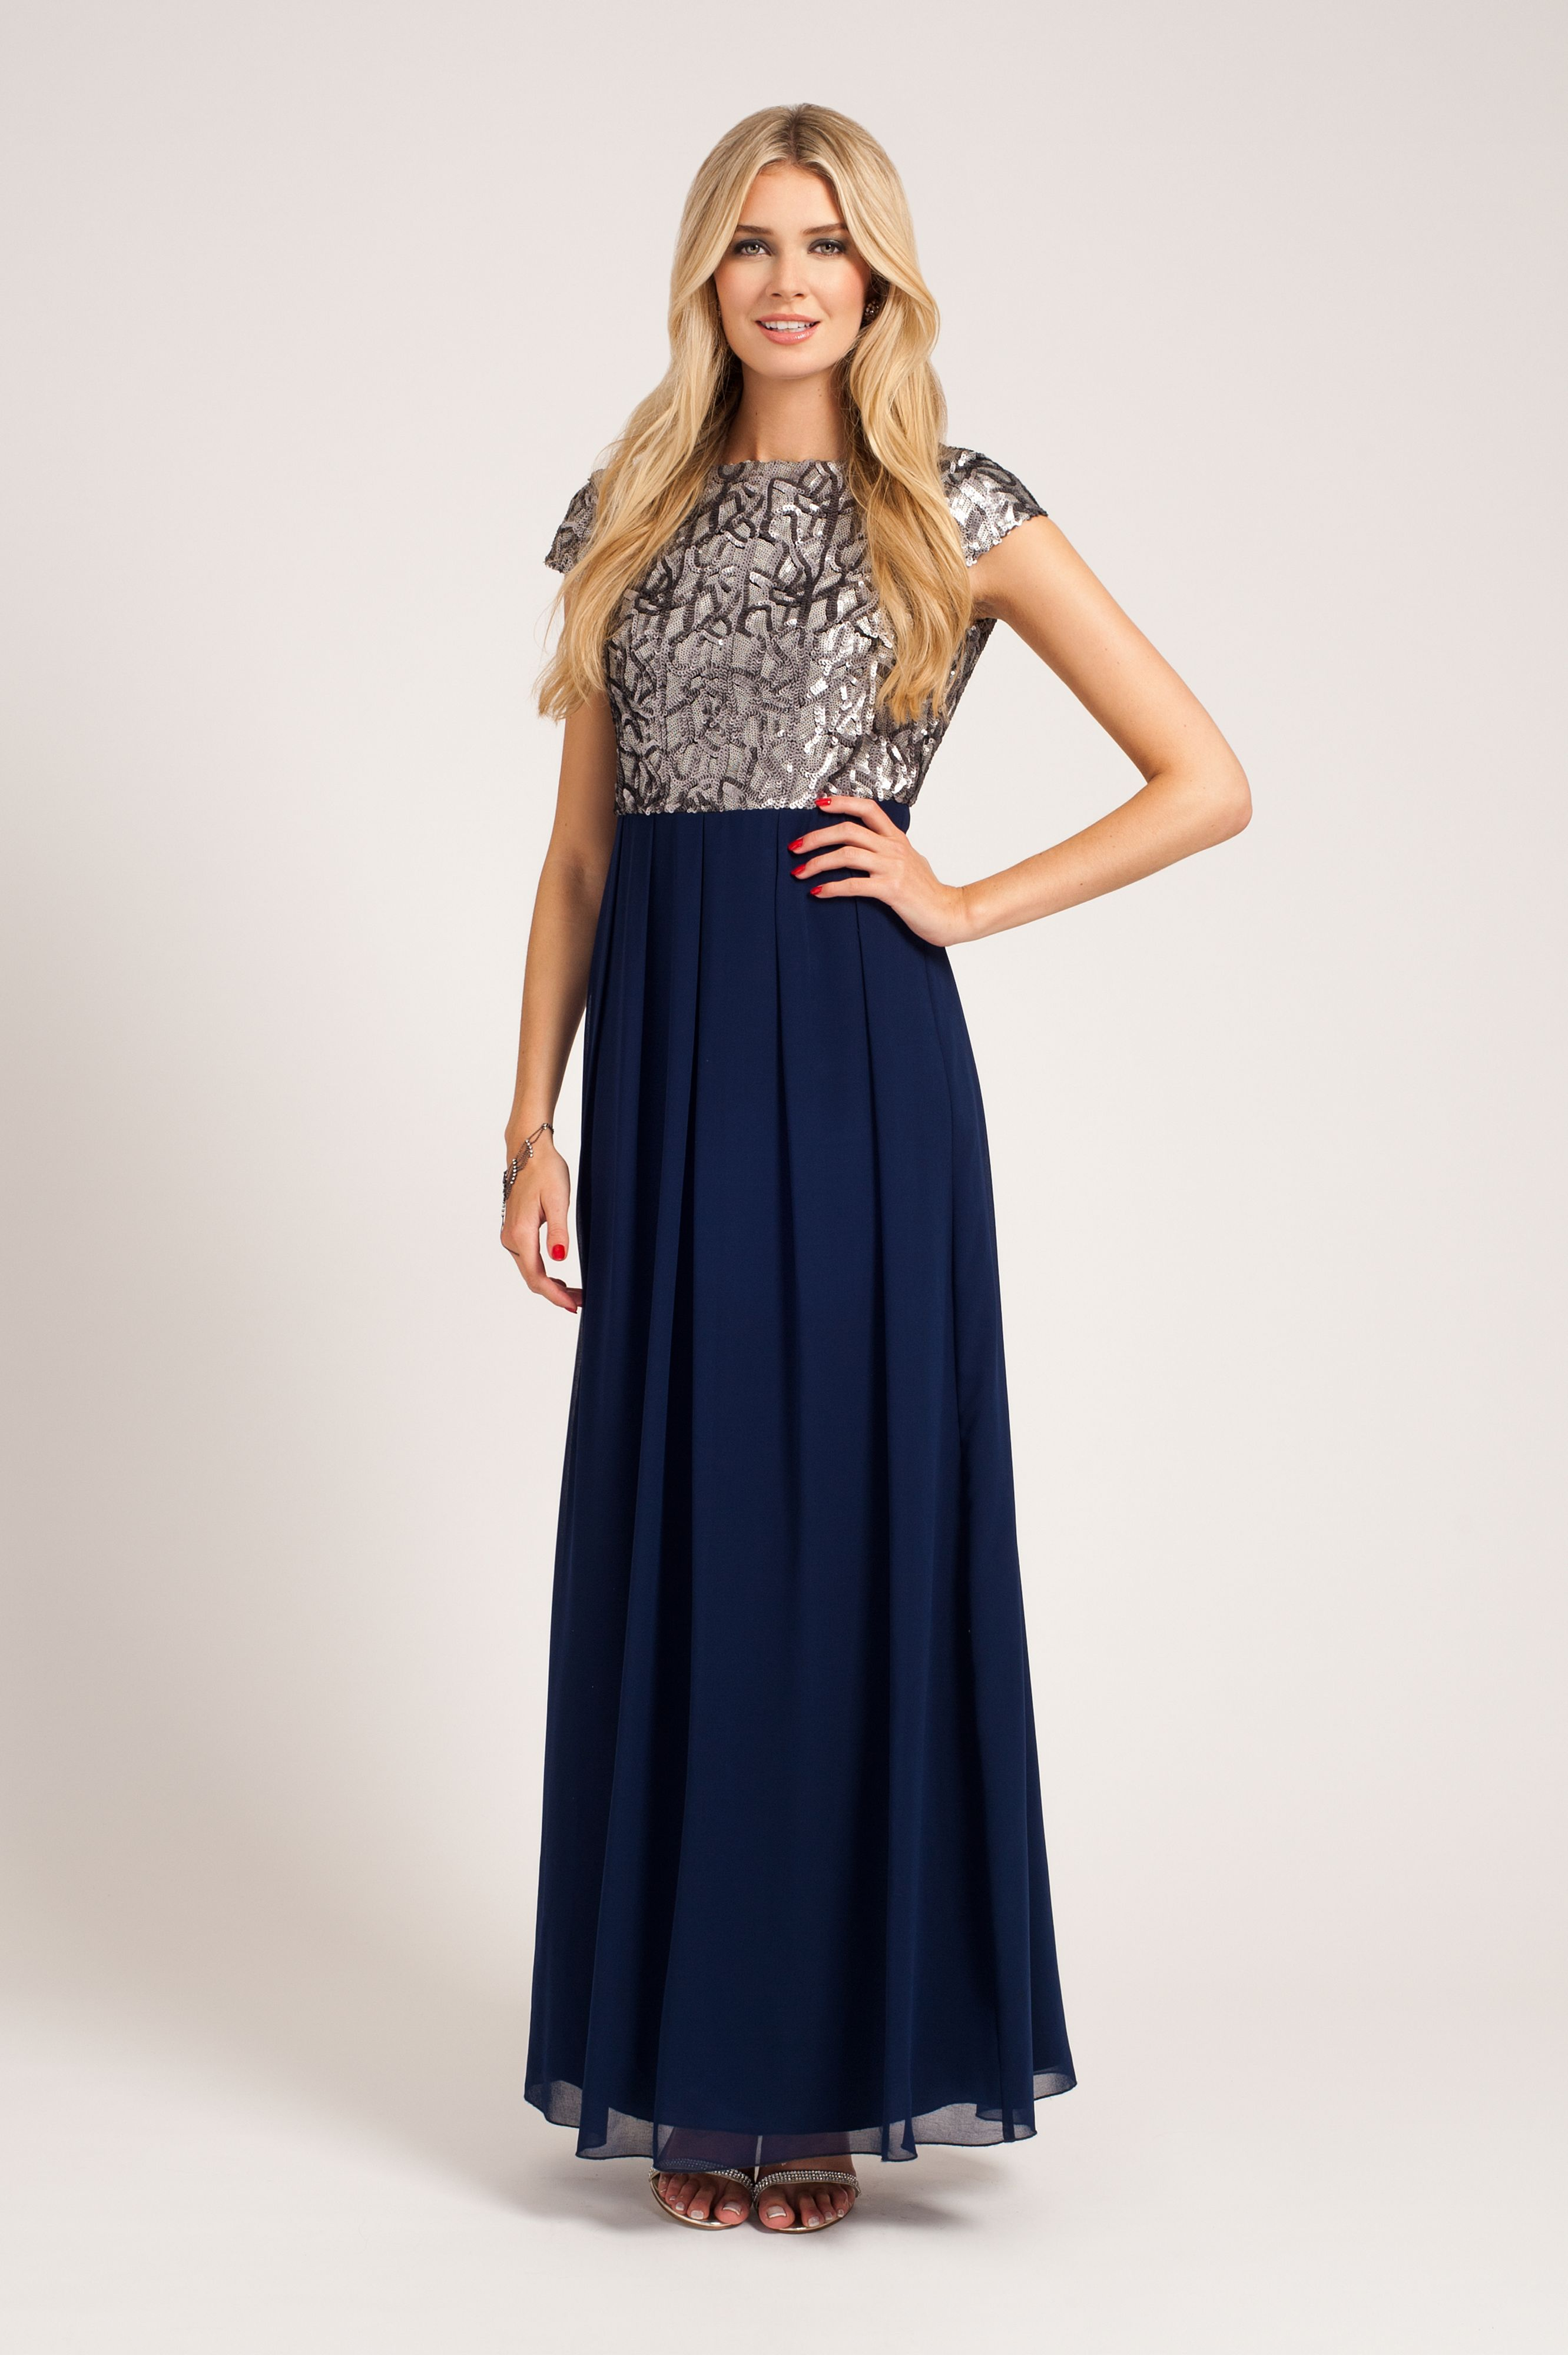 Sequin top cap sleeved maxi dress